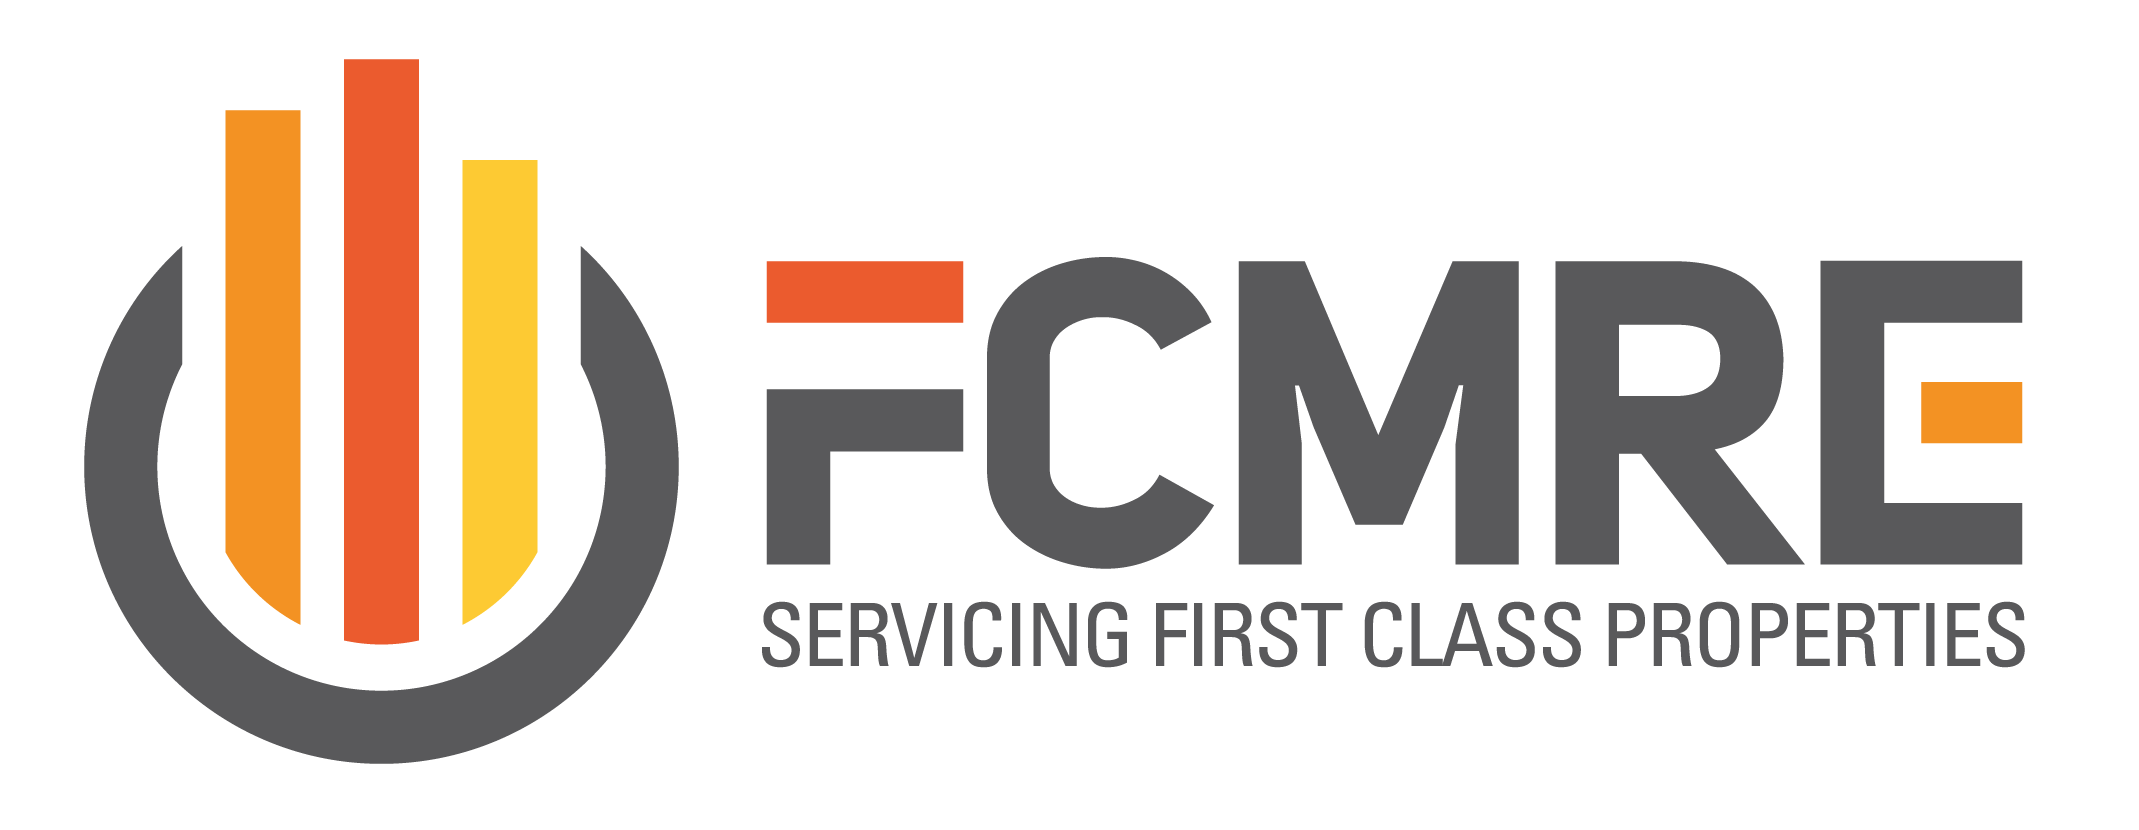 First Class Management (FCMRE)